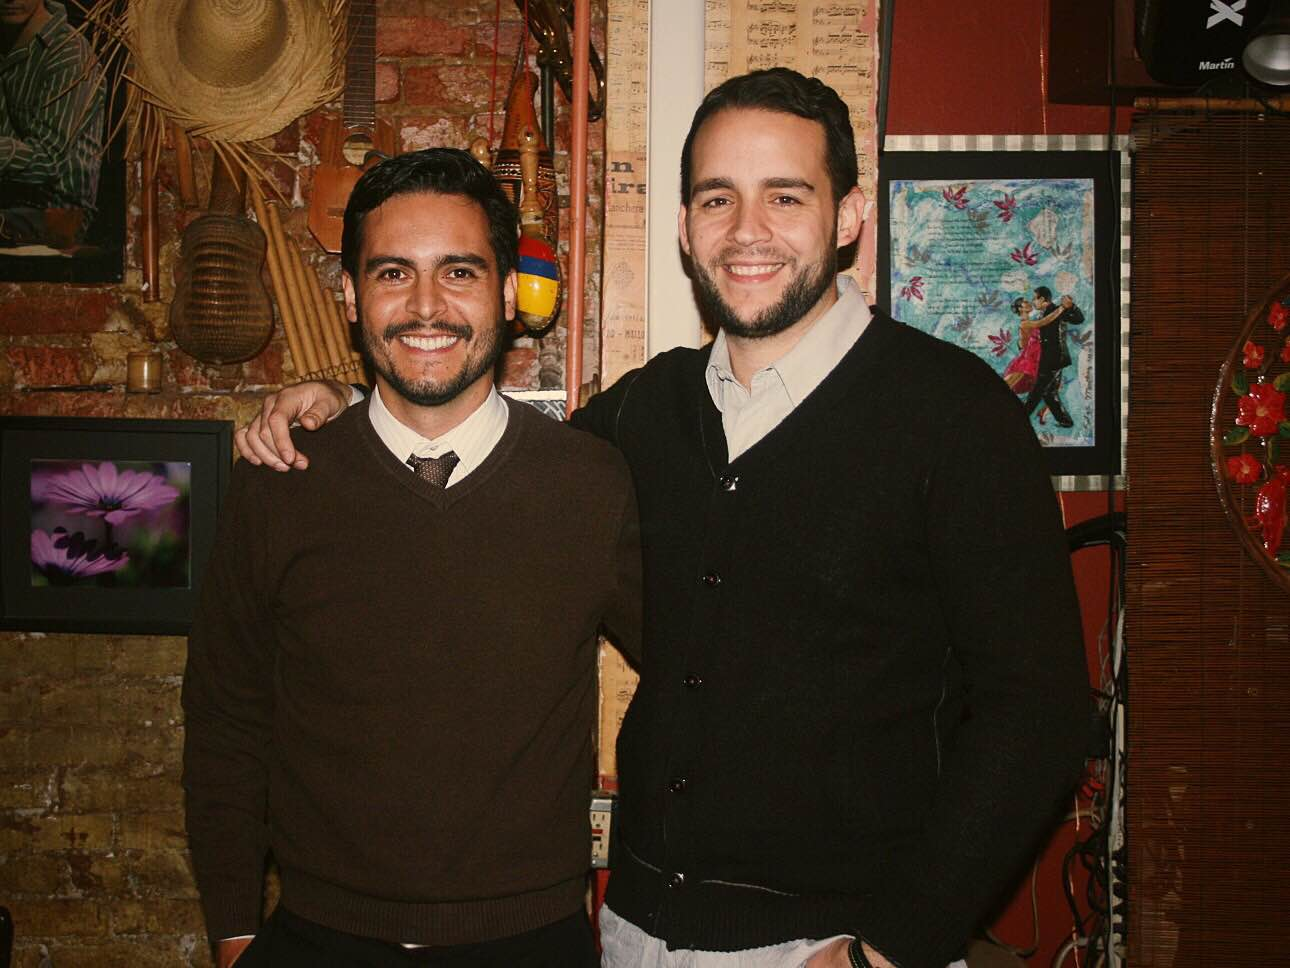 One of Grand Cata's first pop-up events in 2011 at Rumba Café in Adams Morgan. Before Grand Cata had a store space it was just an idea that moved from place to place, celebrating Latin wines and Latino culture.